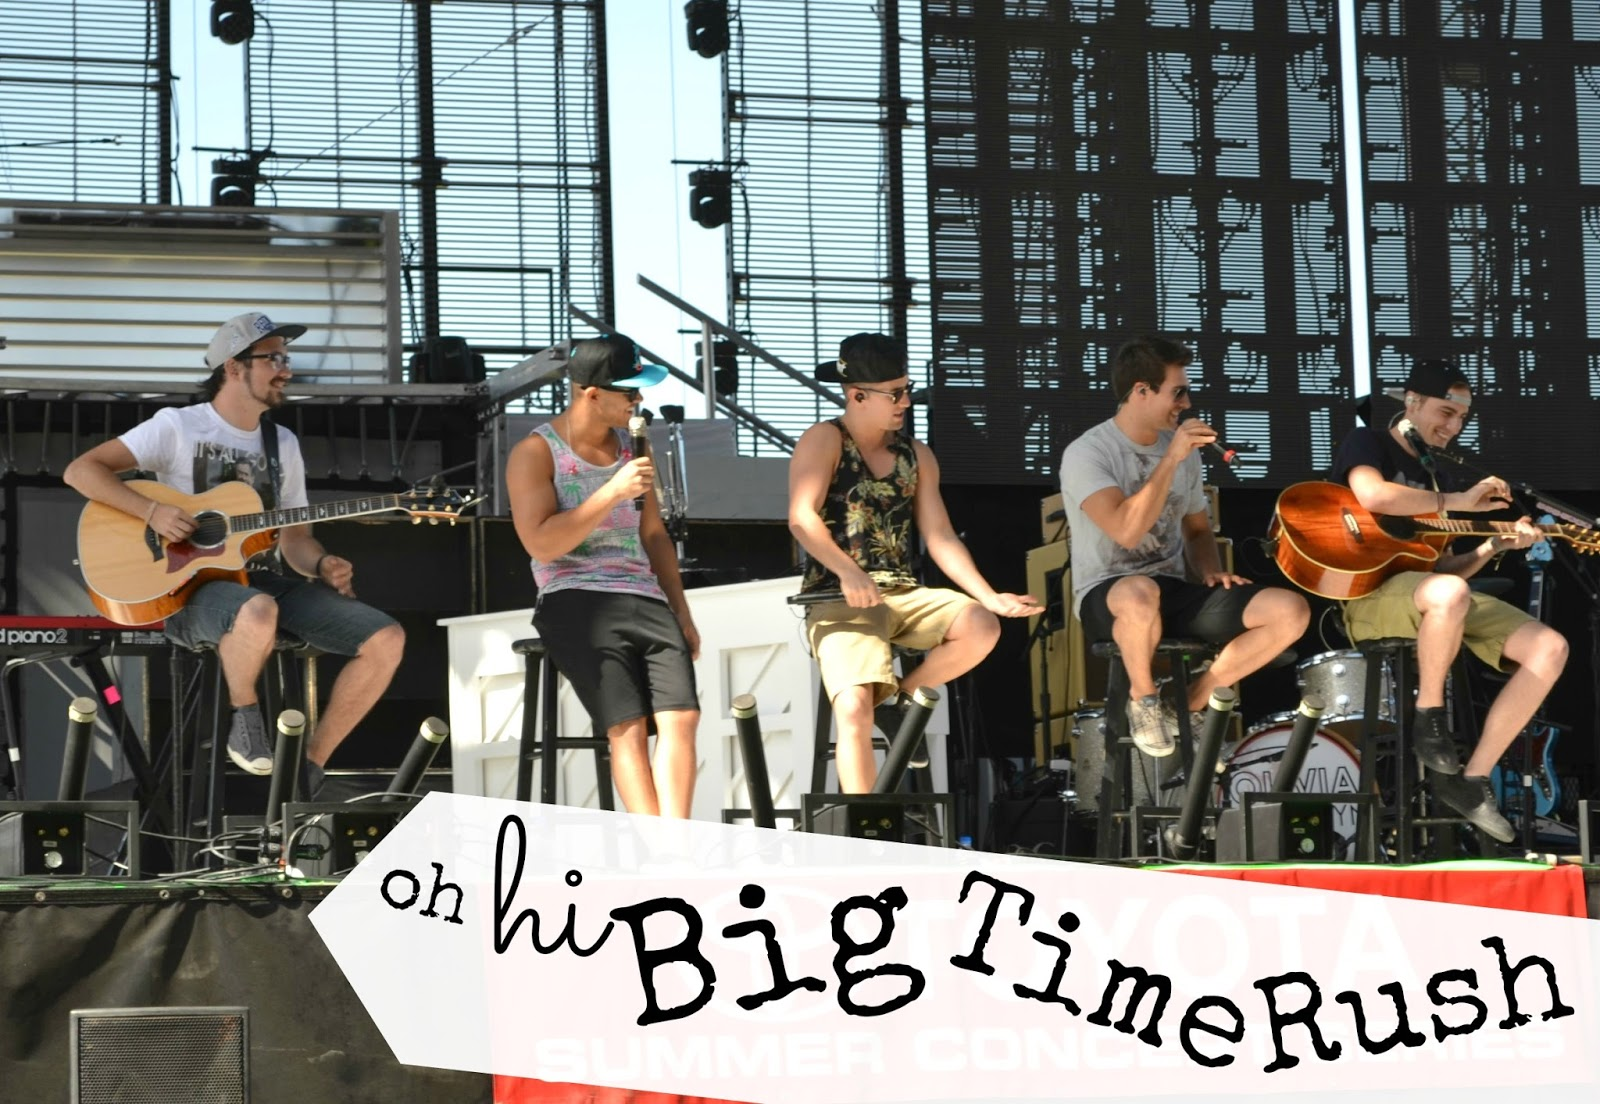 Mommy Testers Girls Just Wanna Have Fun Hey There Big Time Rush